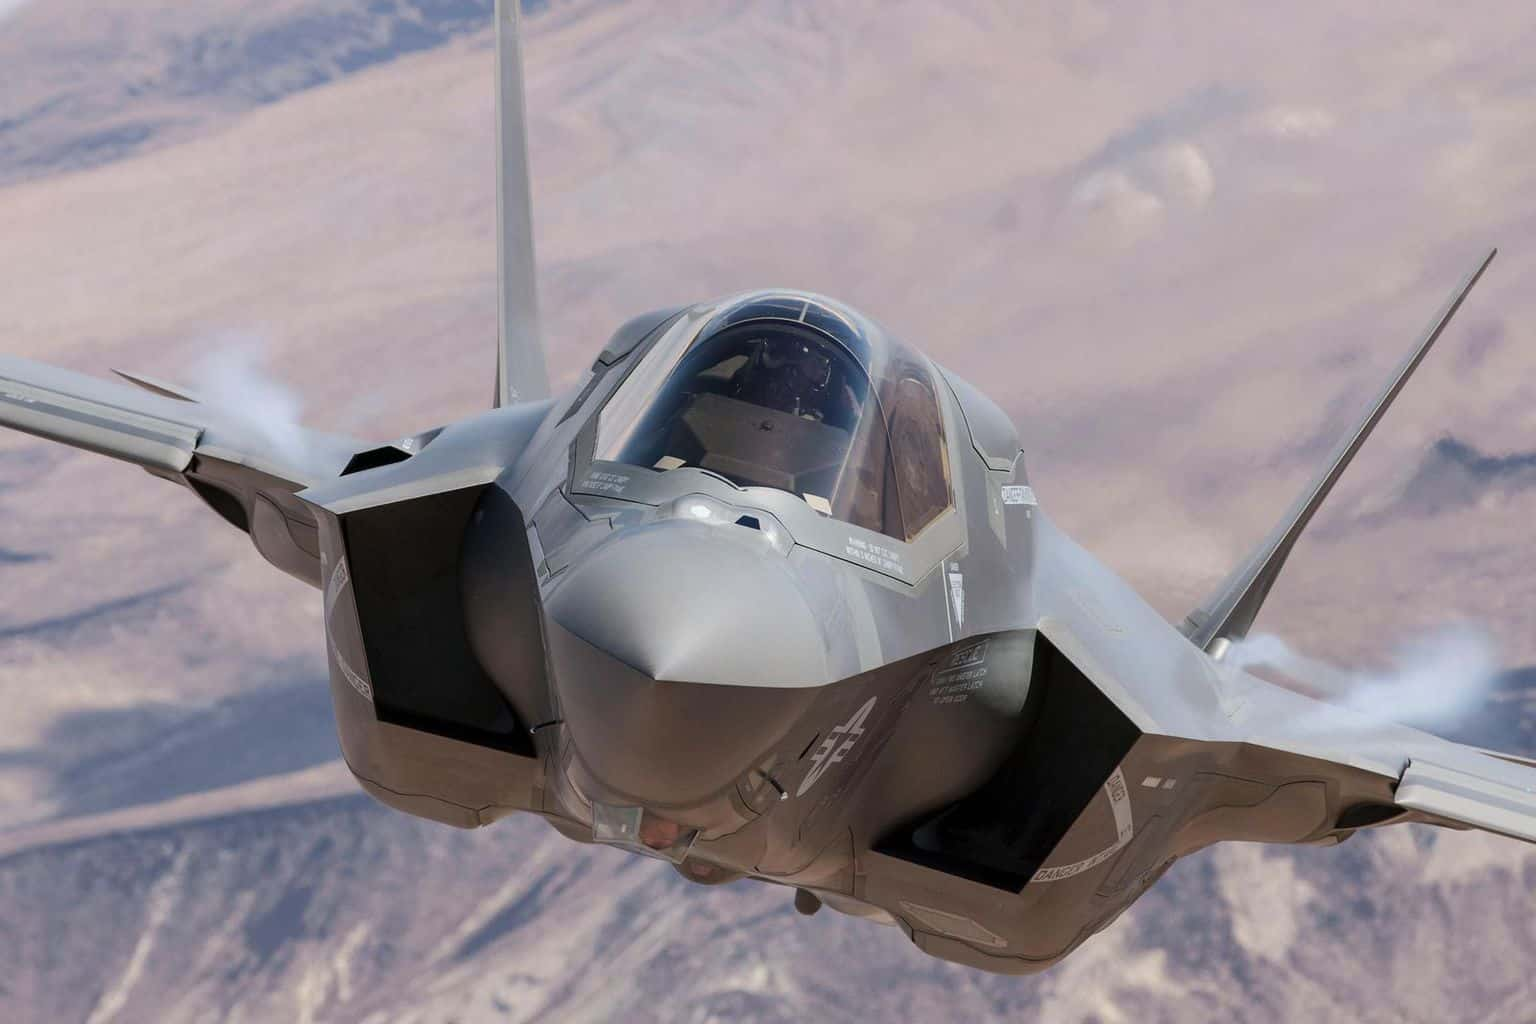 It's Official: Greece Requests Purchase Of 5th Generation American F-35 Stealth Fighter Jets